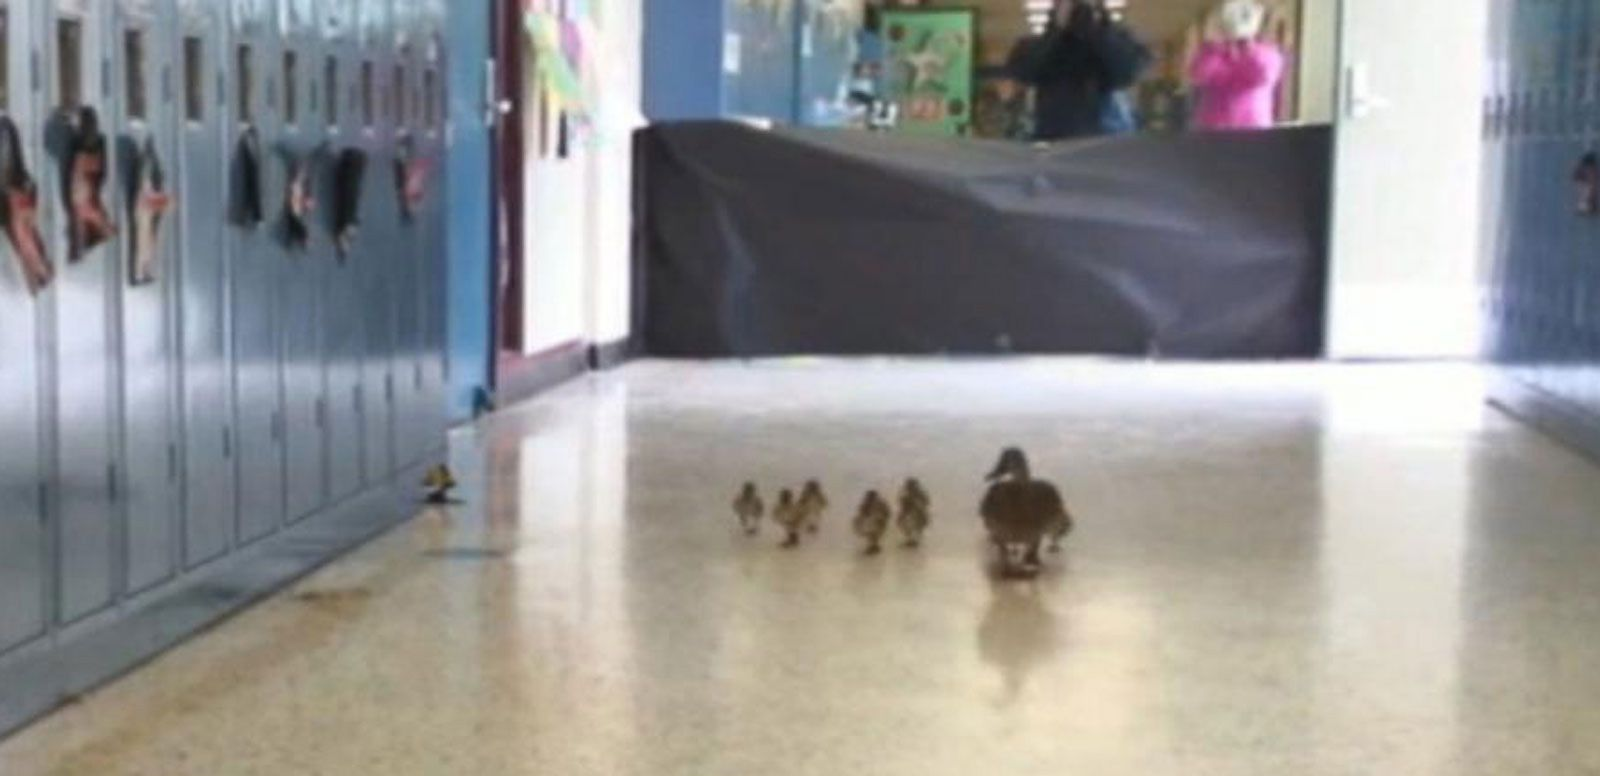 VIDEO: Mother Leads Ducklings Through School Halls